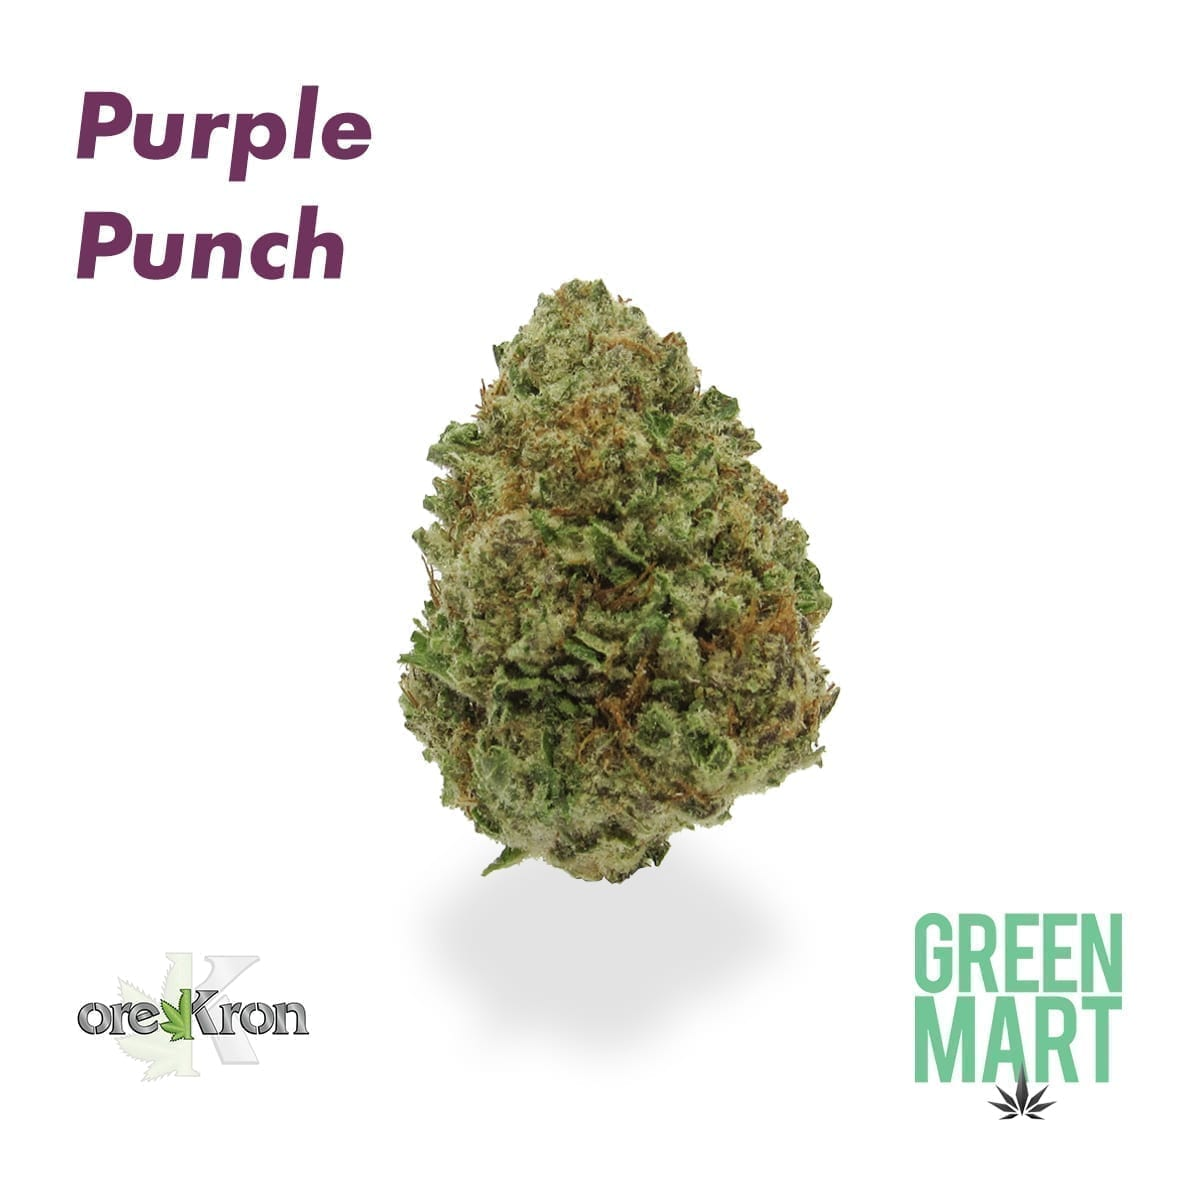 Purple Punch Orekron